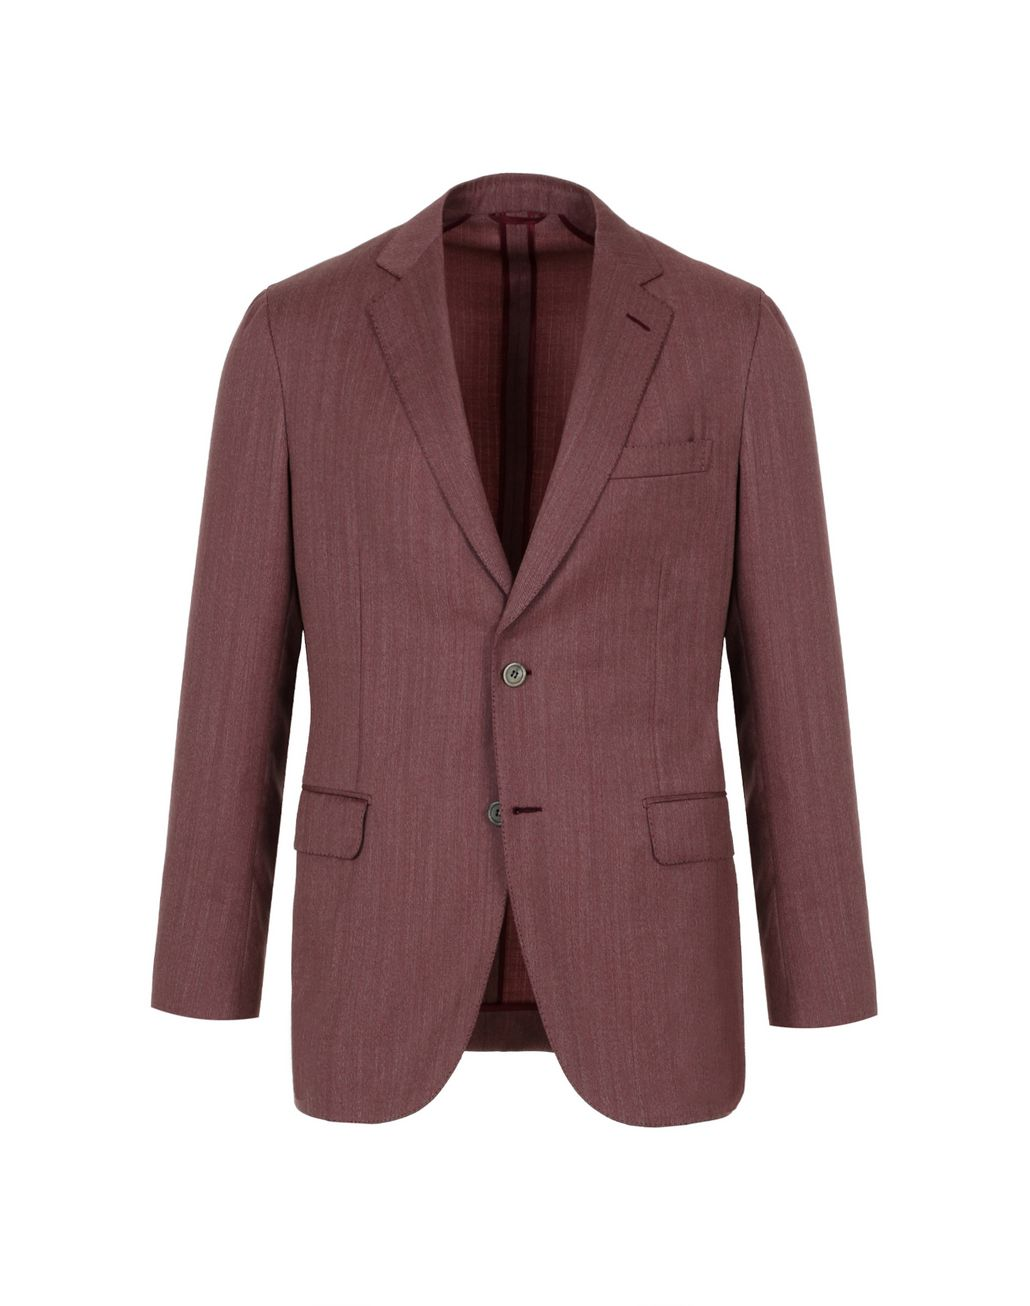 BRIONI Veste Plume à chevrons bordeaux Suits & Jackets Homme f